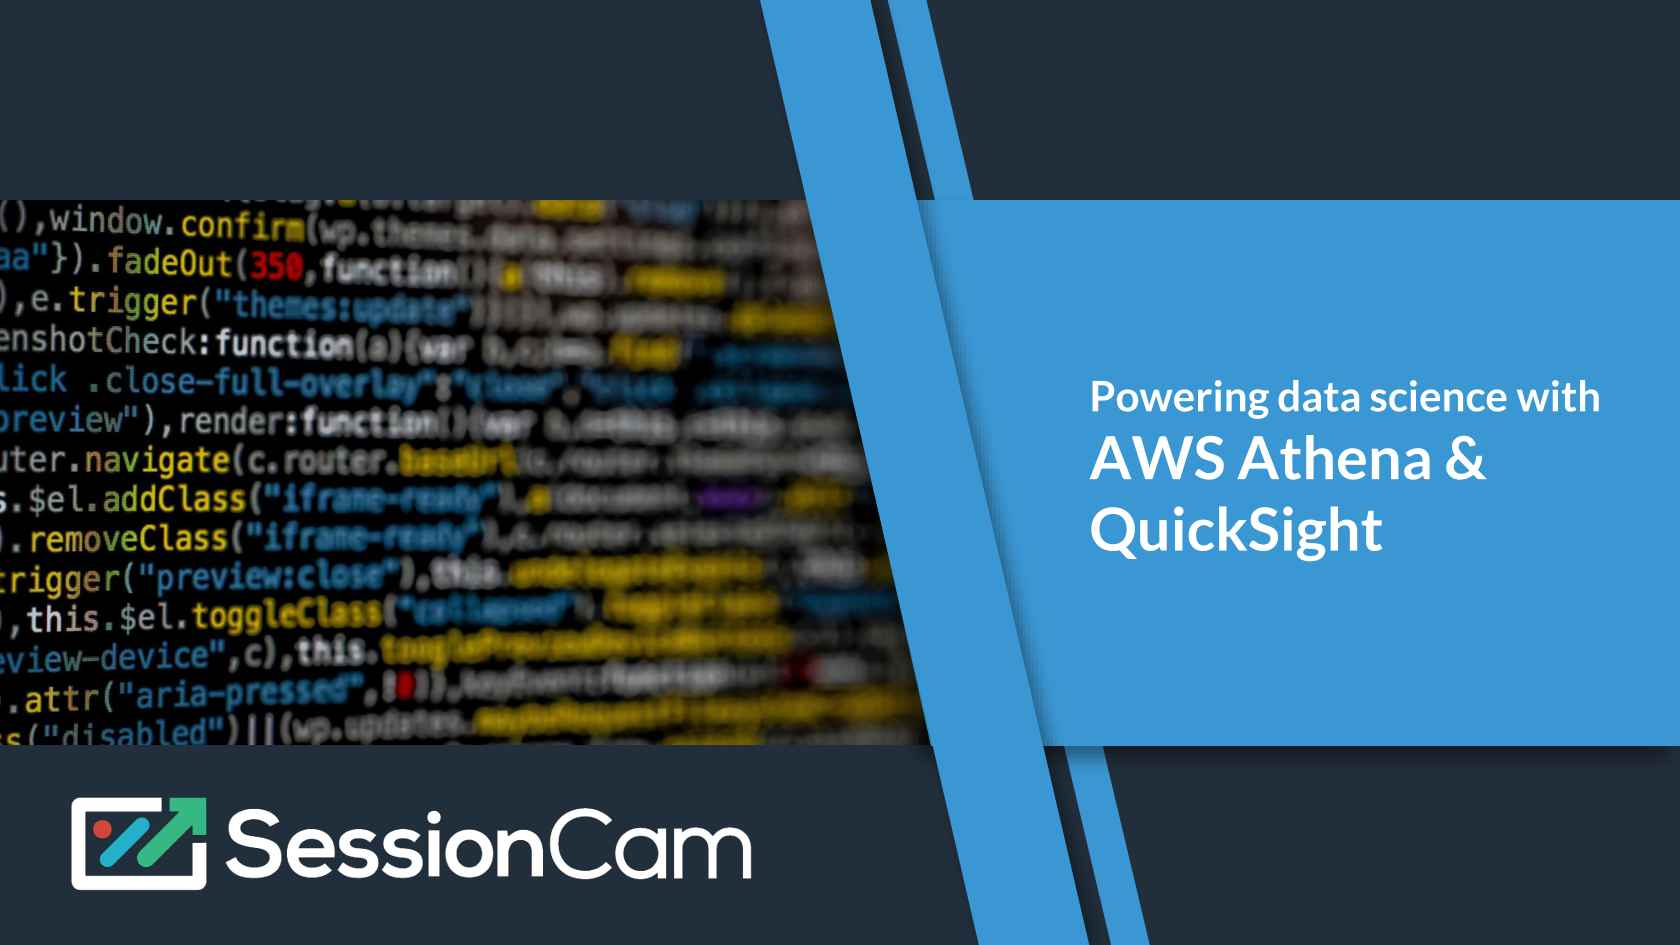 Powering Data Science with AWS Athena & QuickSight